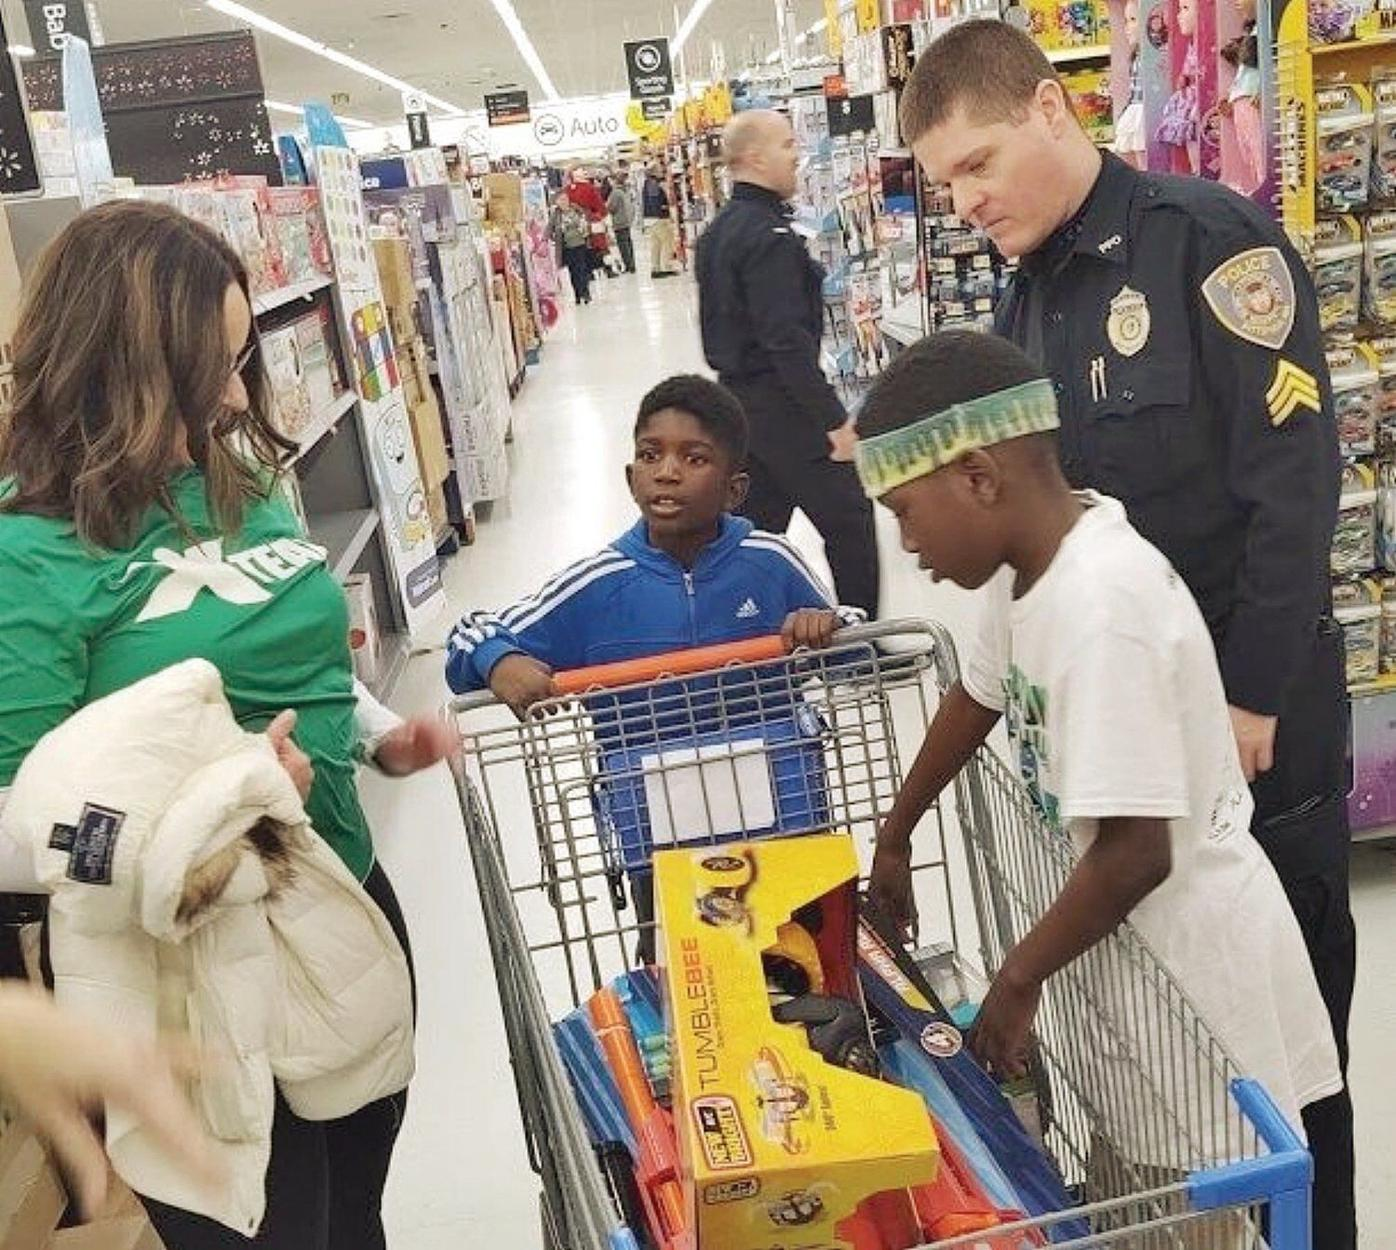 Children shop with cops in annual Pittsfield tradition